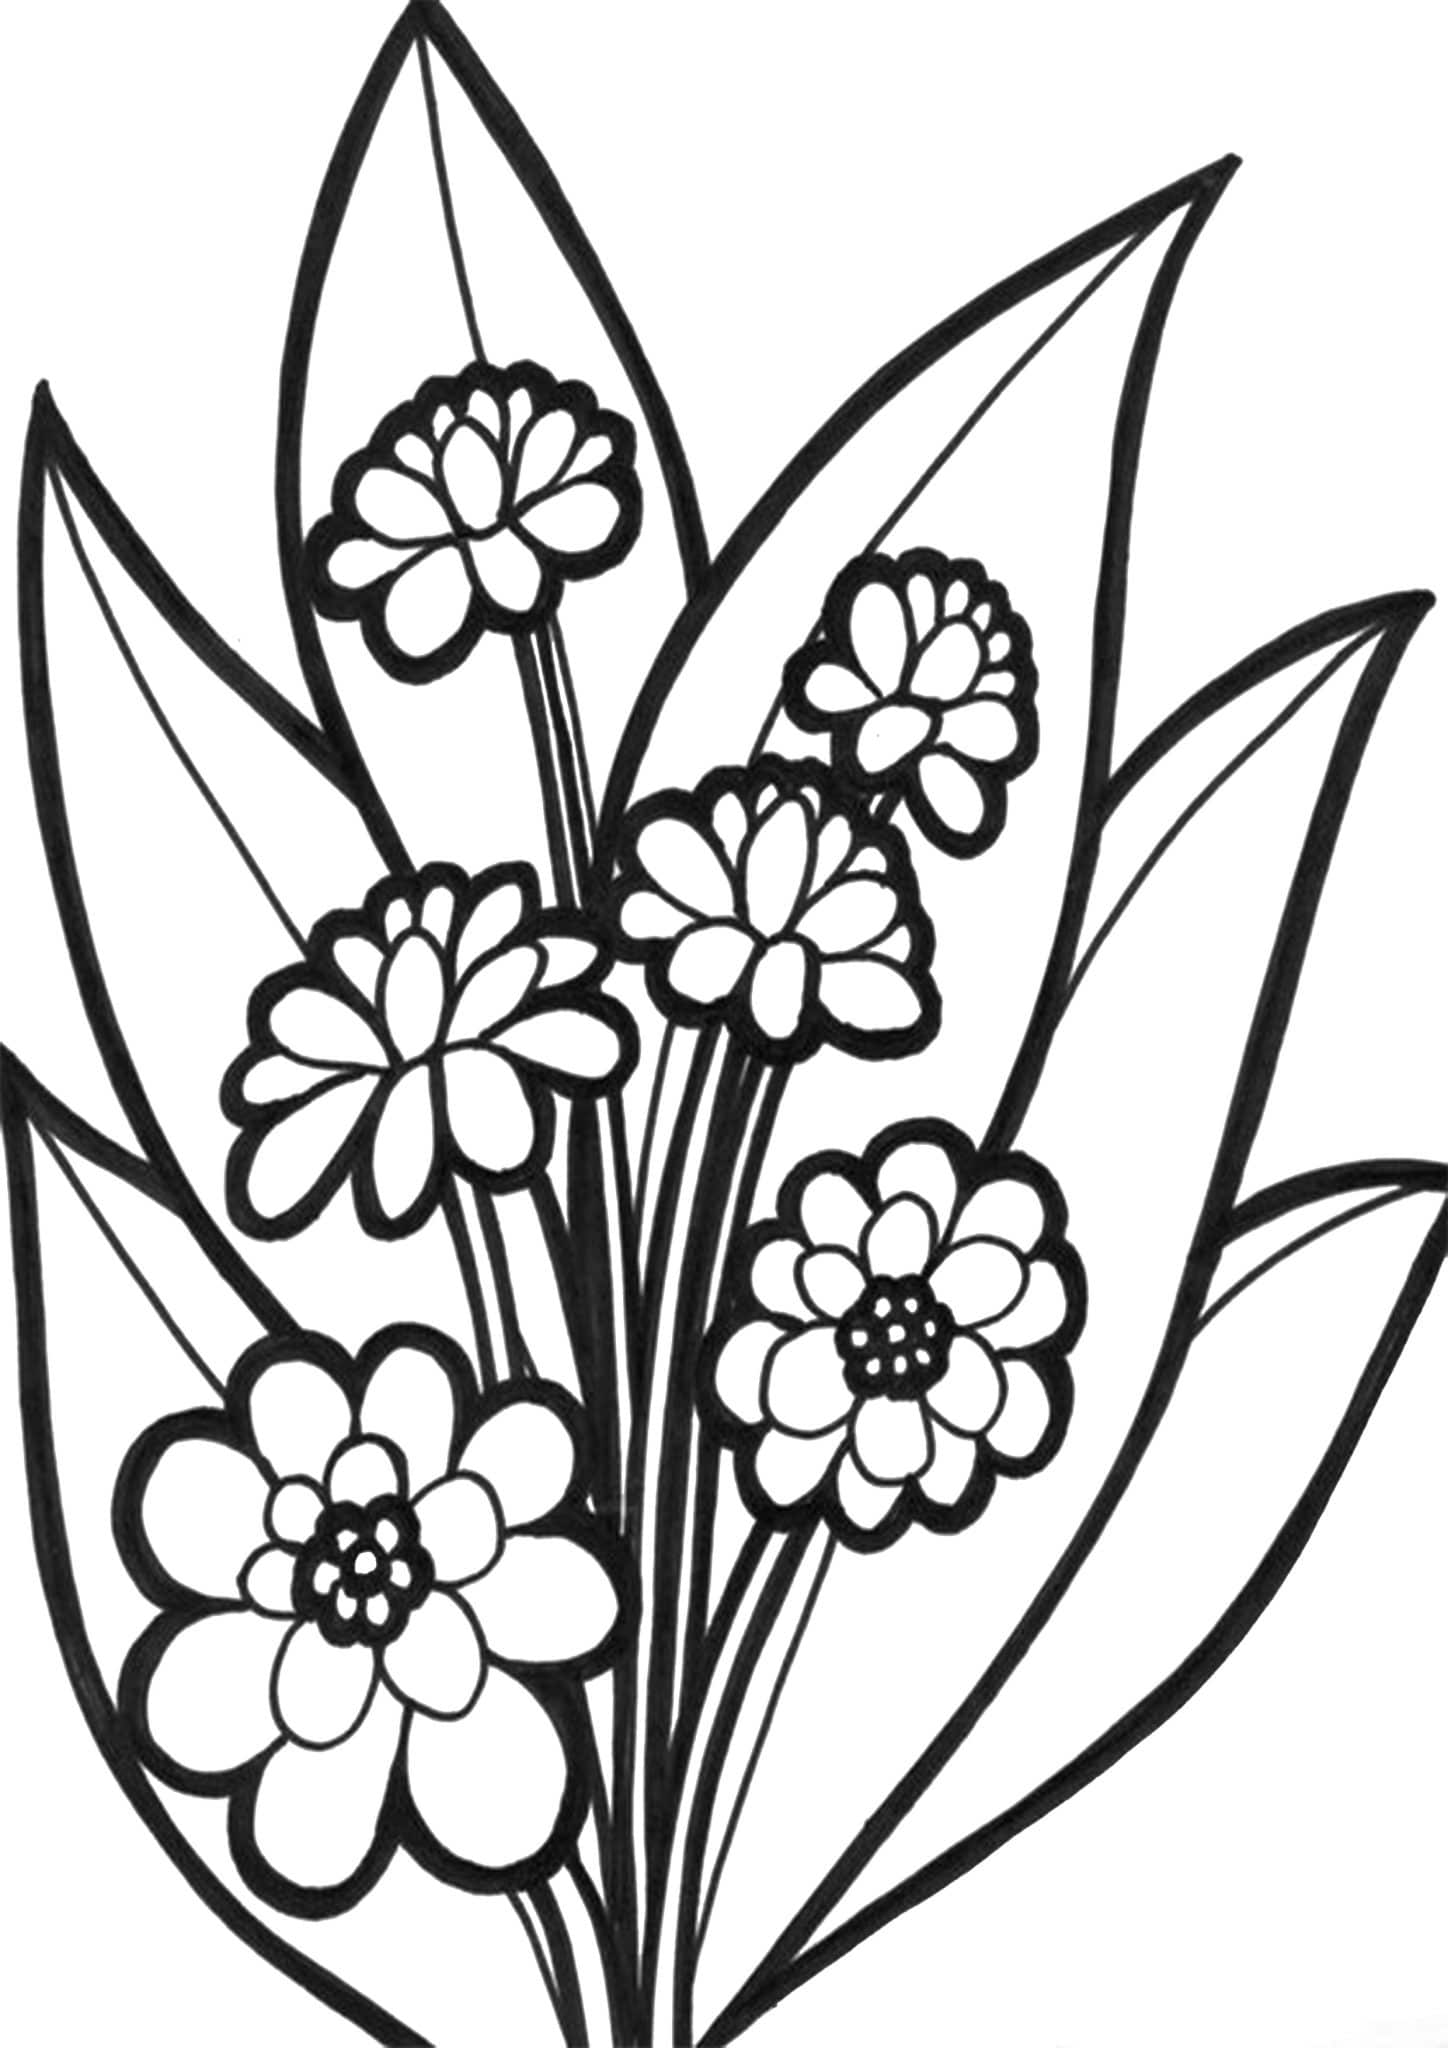 coloring pages about flowers spring flowers coloring pages printable coloring flowers pages about